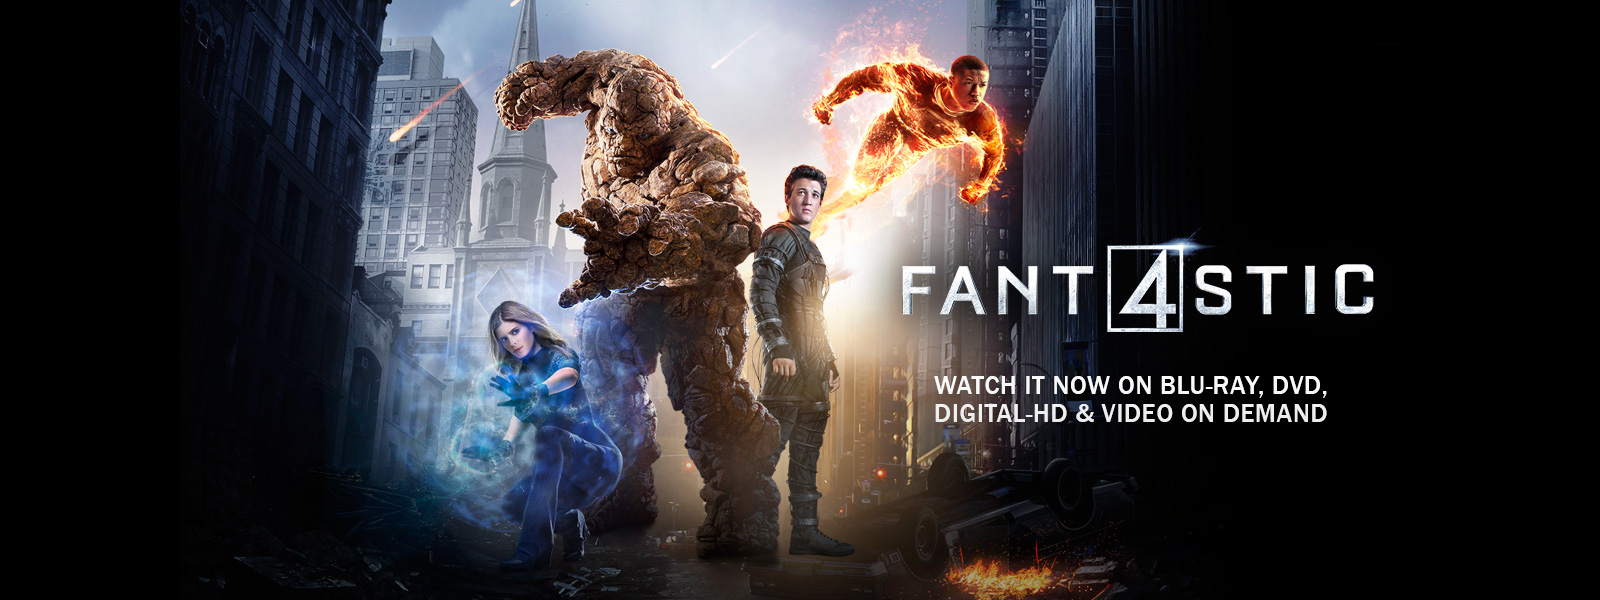 Fantastic Four - Watch it now on Blu-ray, DVD, Digital HD & Video on Demand